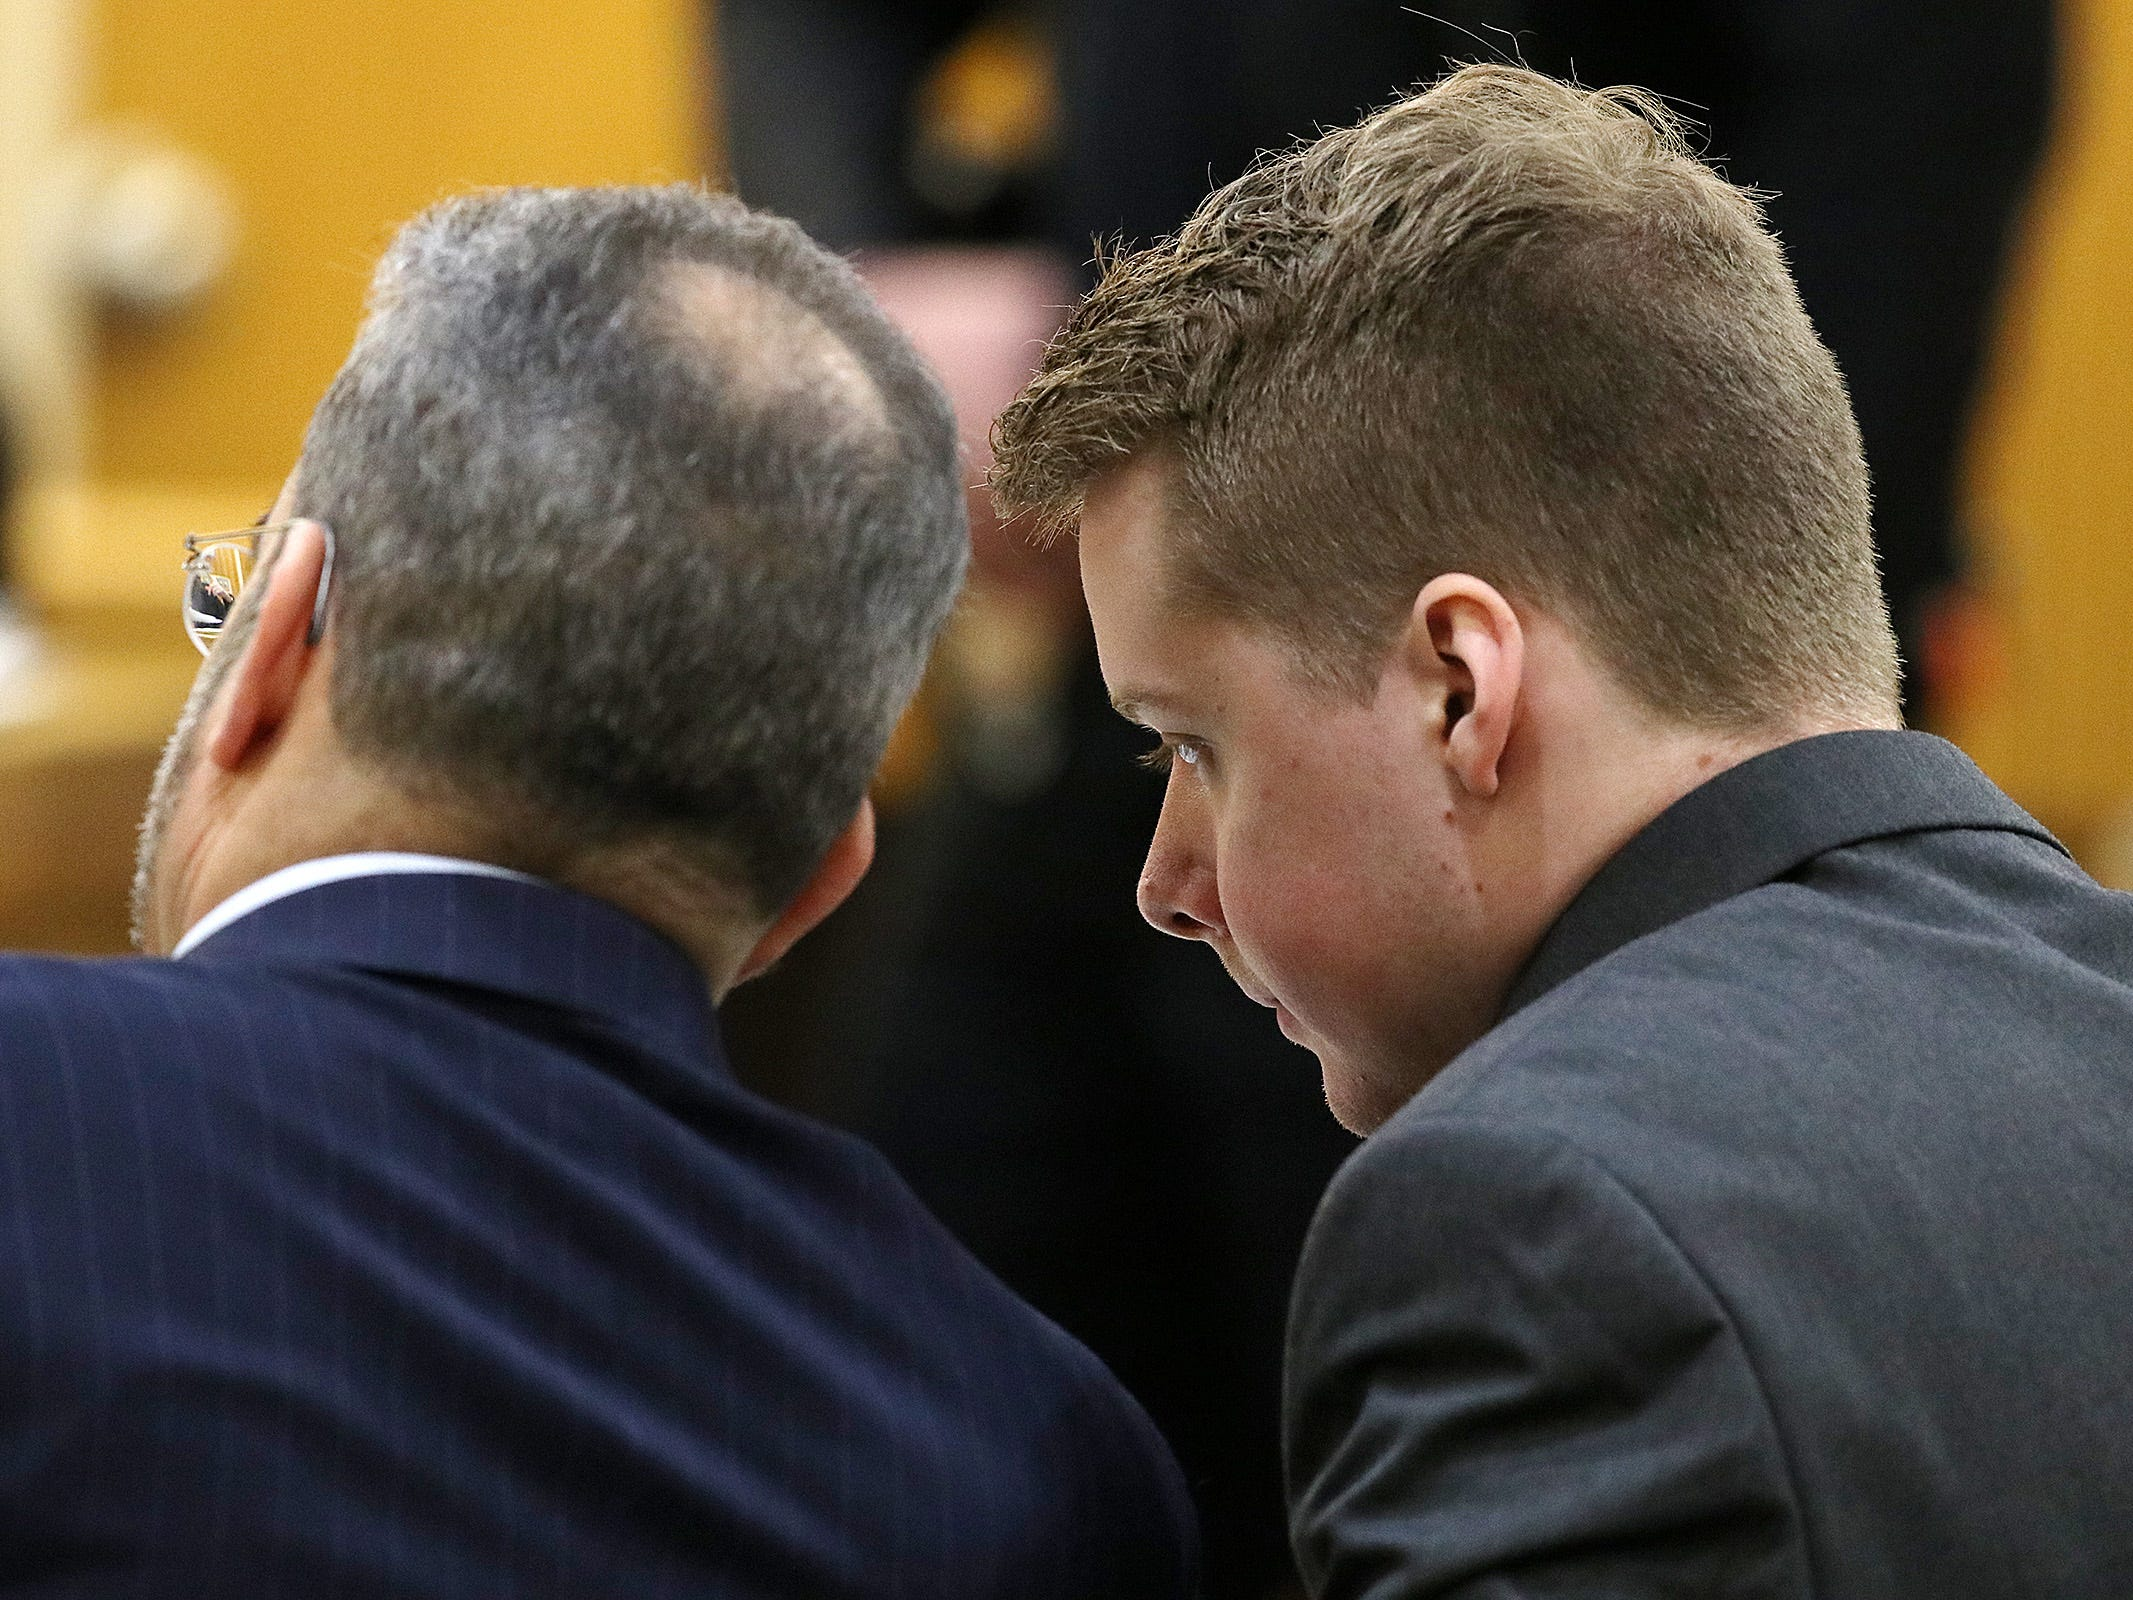 Liam McAtasney, who is charged with the murder of former high school classmate, Sarah Stern, speaks to his lawyer, Carlos Diaz-Cobo, during his trial before Superior Court Judge Richard W. English at the Monmouth County Courthouse in Freehold, NJ Thursday, February 7, 2019.